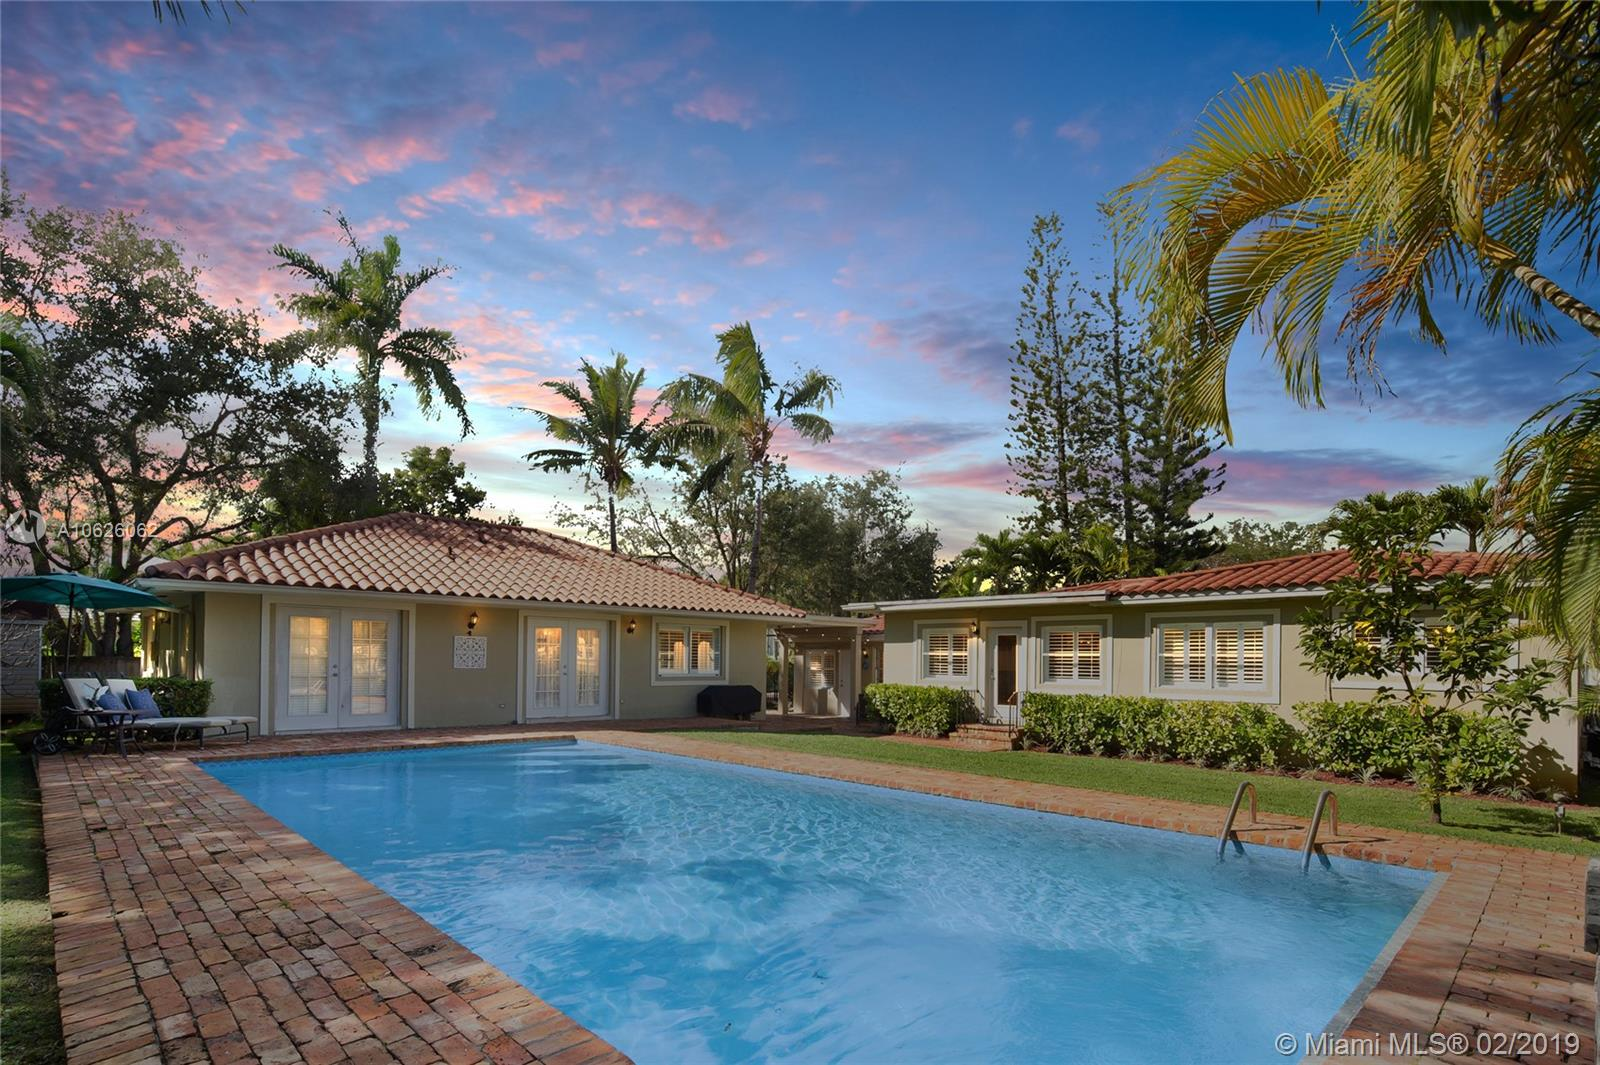 Spectacular Pool Home with Guest House in the prestigious and sought after Sea View Park neighborhood of South Miami.  This well kept gem with spacious kitchen, living and dining room has plenty of closets and storage for a large family.   Crystal clear swimming pool with covered patios, Chicago brick, BBQ, lush landscaping, and long driveway with lots of parking!  Immaculately kept property in beautiful condition that has many features with state of the art appliances, Travertine Marble bathrooms, Dade County Pinewood Flooring, and impact resistant doors to name a few.  Close to Epiphany Church, Lourdes Academy, Dante Fascell Park, Temple Beth Am, Shops, Supermarkets, Restaurants and much more!  Great property for entertaining, and a great investment opportunity.  A must see!!!